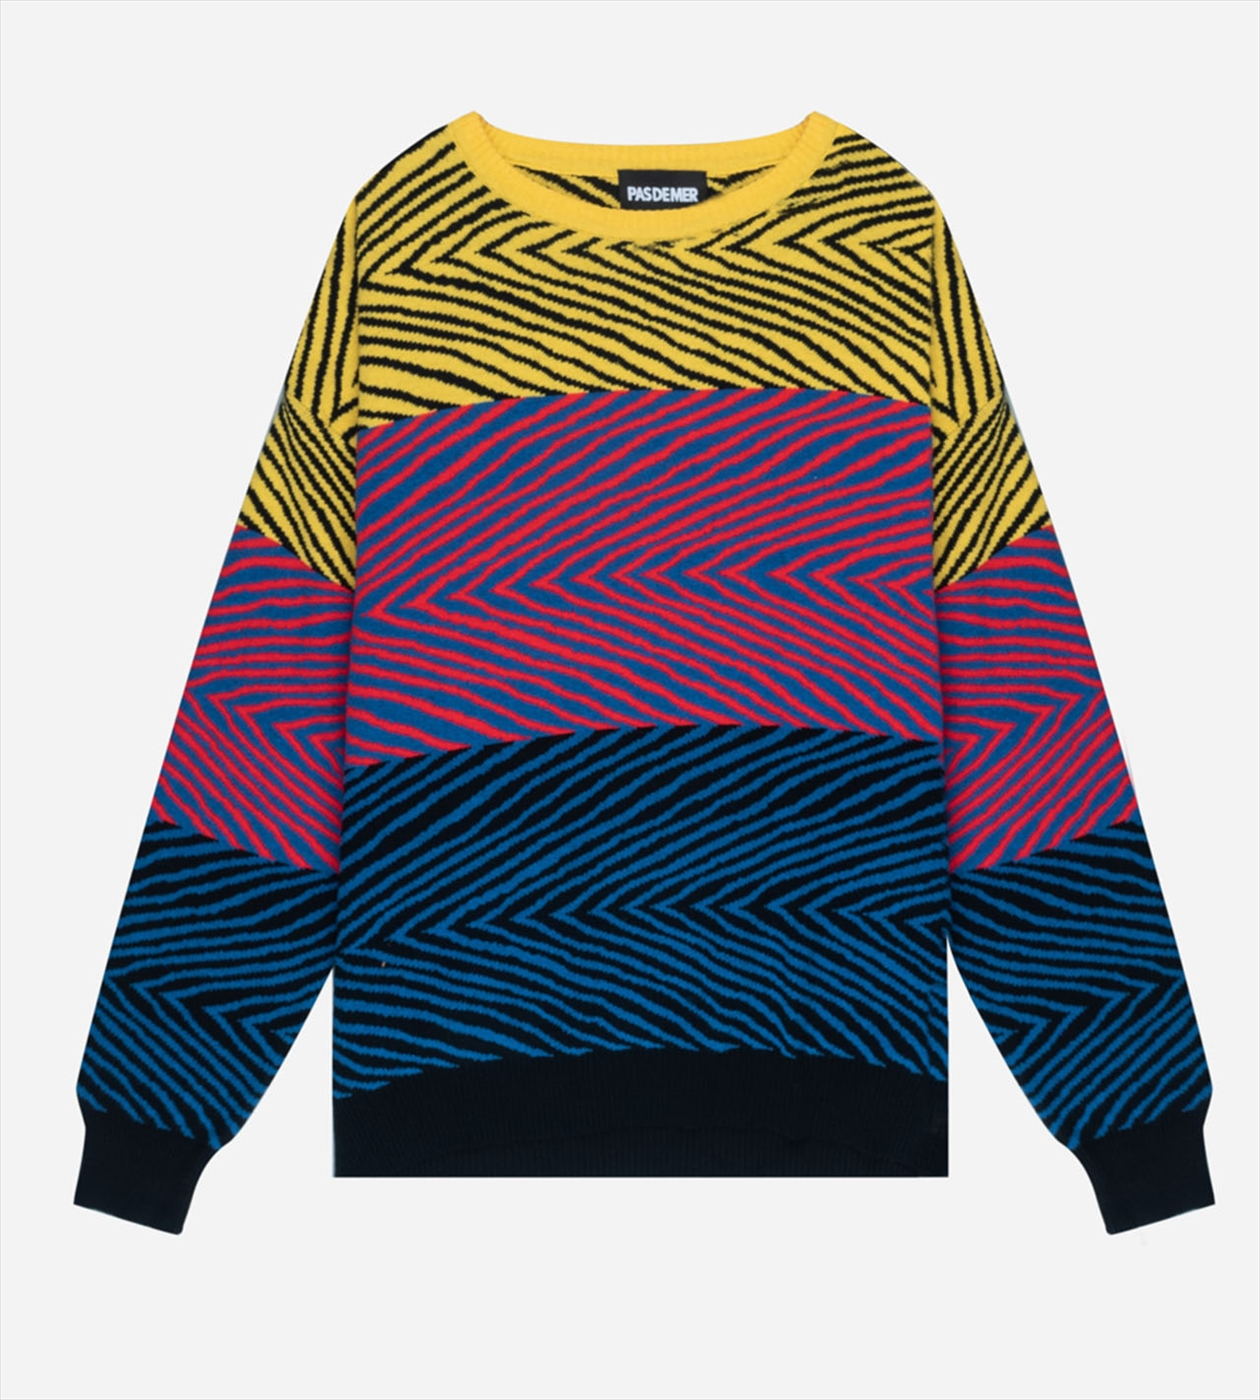 【PAS DE MER/パドゥメ】TIGER KNIT ニット / YELLOW/RED/BLUE PATTERN